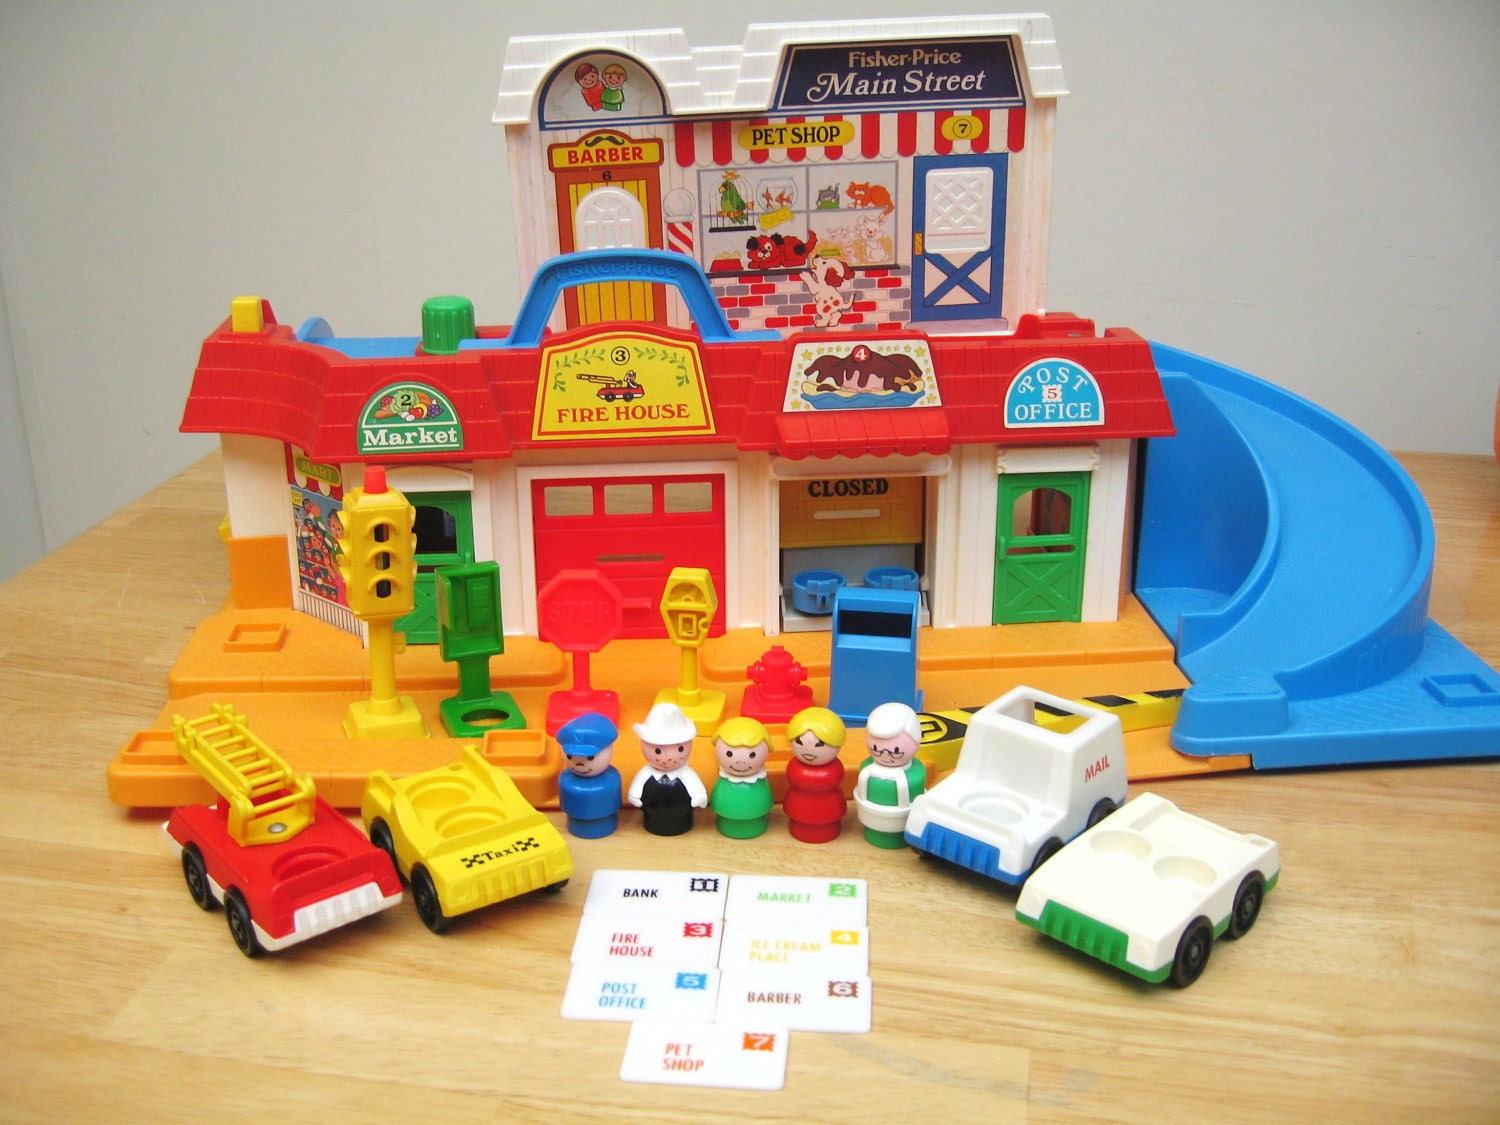 Fisher Price Little People Main Street Complete Set with all